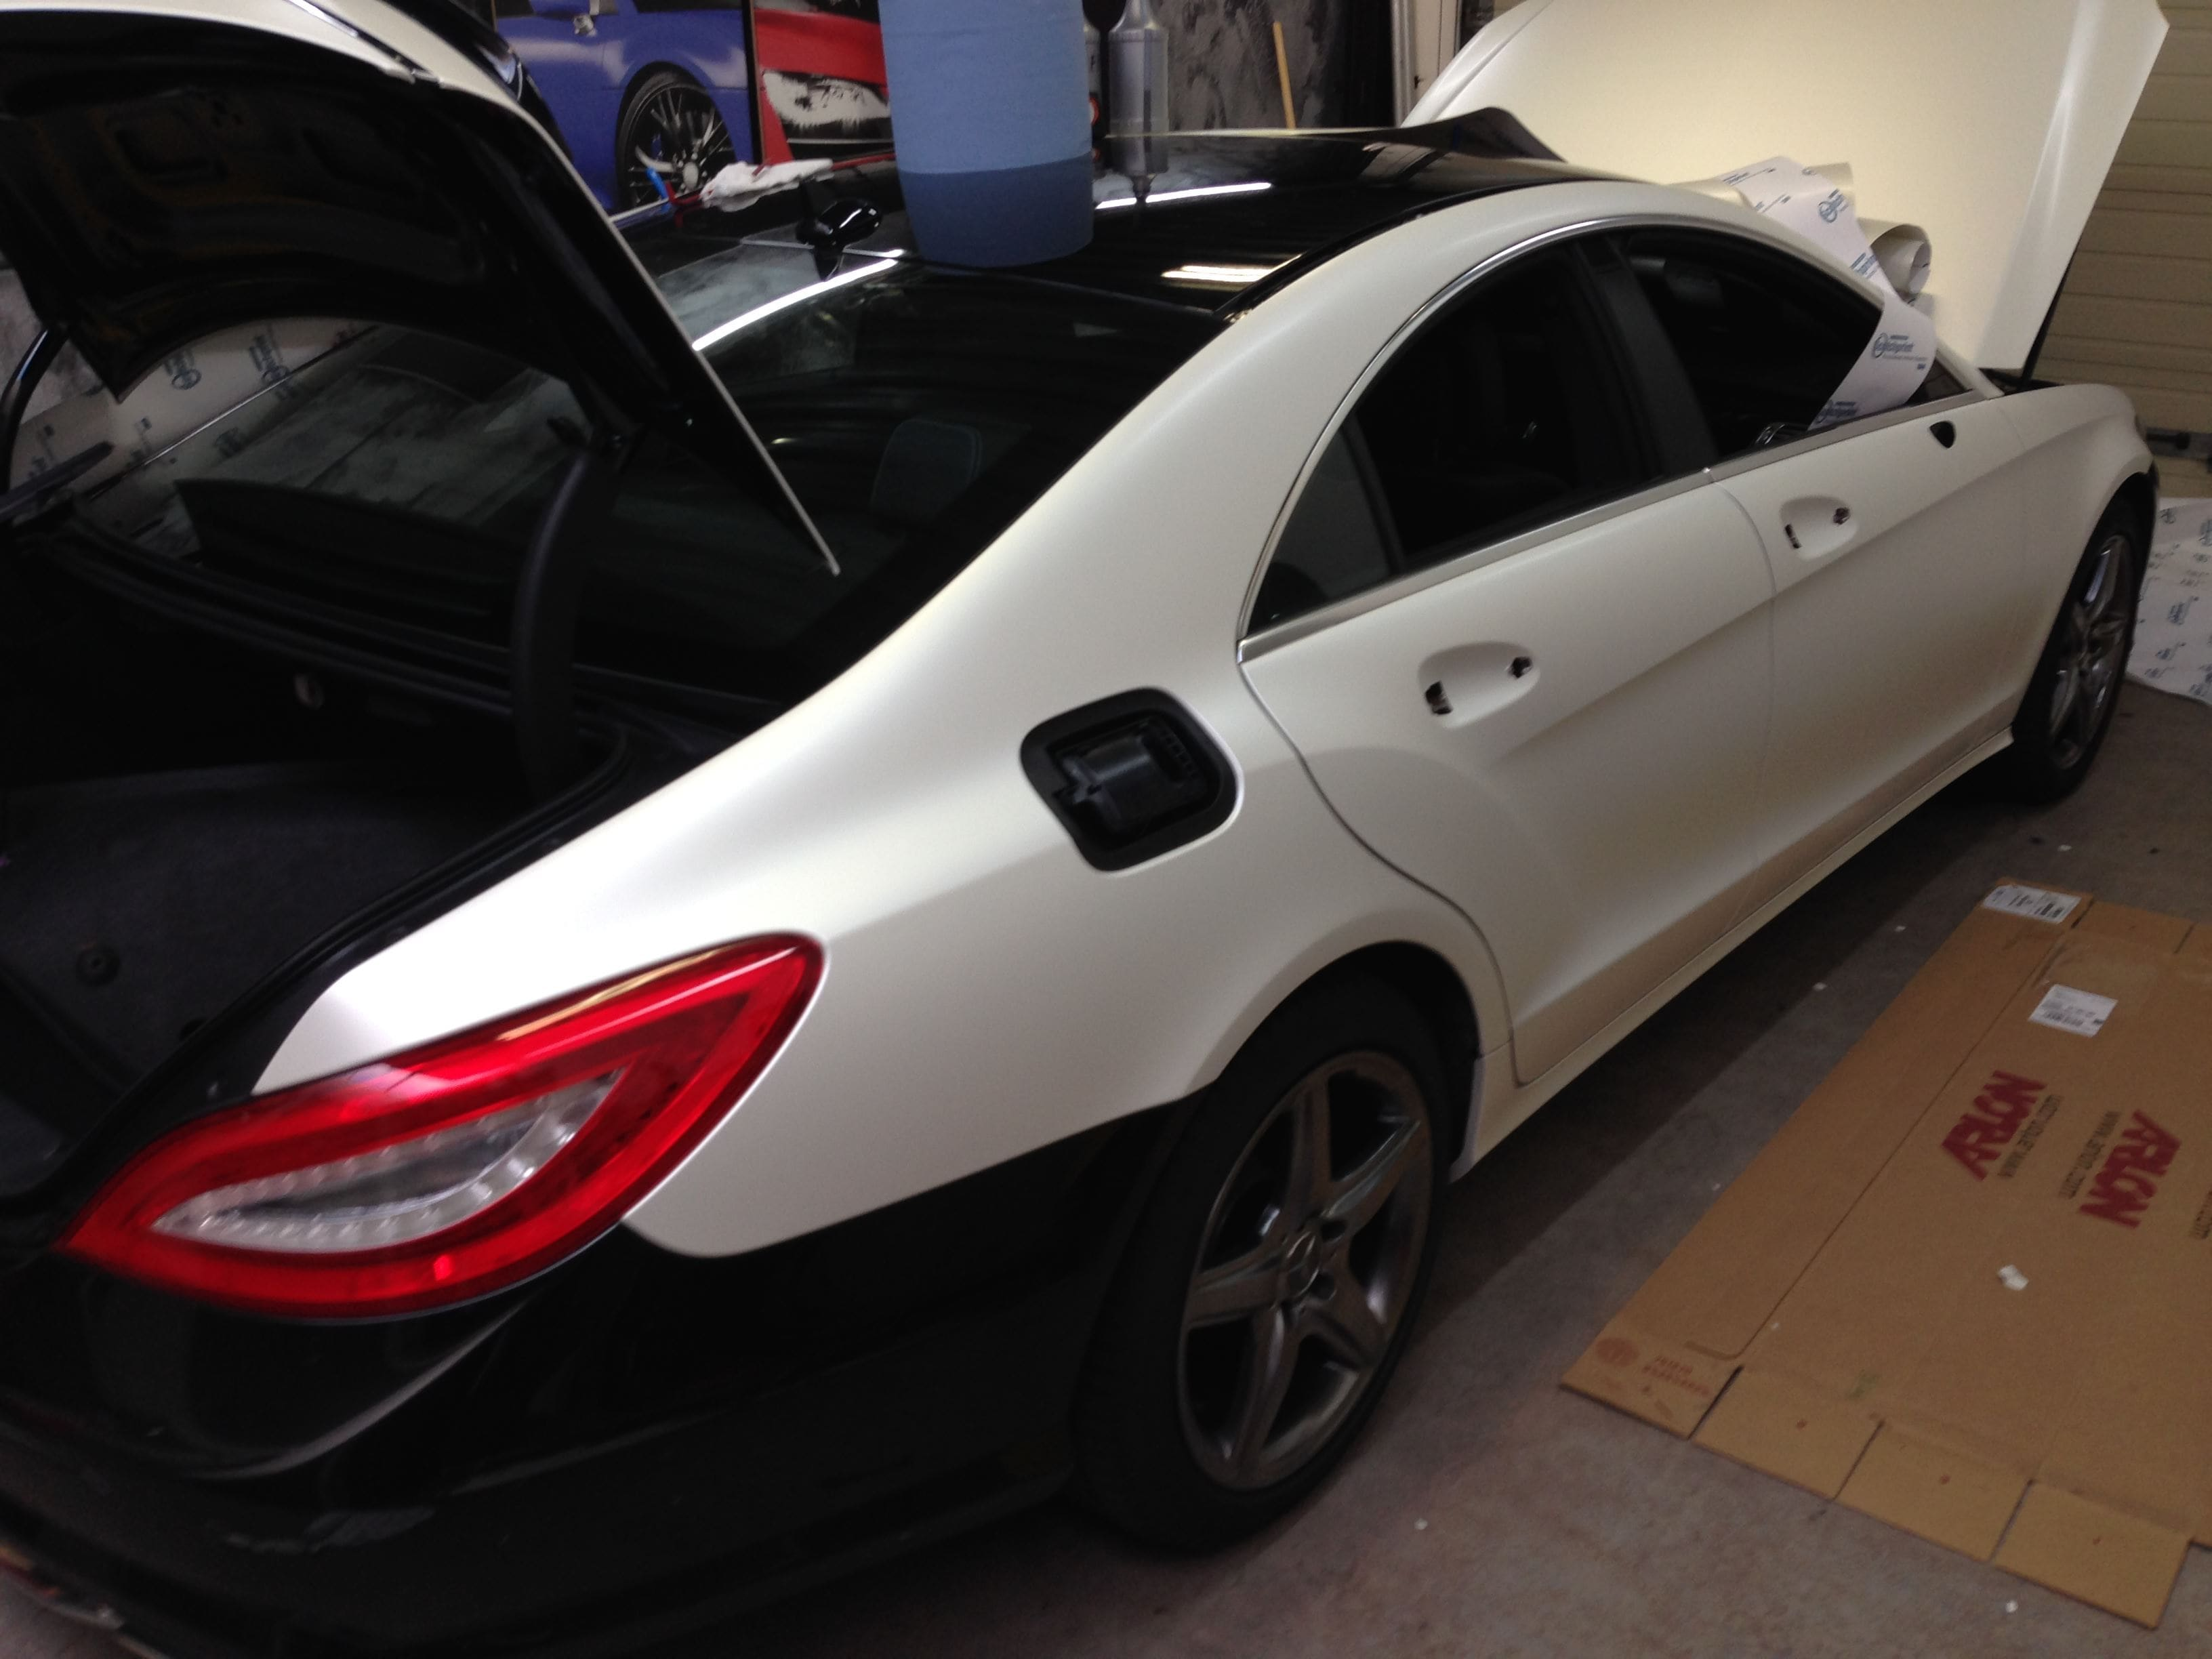 Mercedes CLS met White Satin Pearl Wrap, Carwrapping door Wrapmyride.nu Foto-nr:6178, ©2020